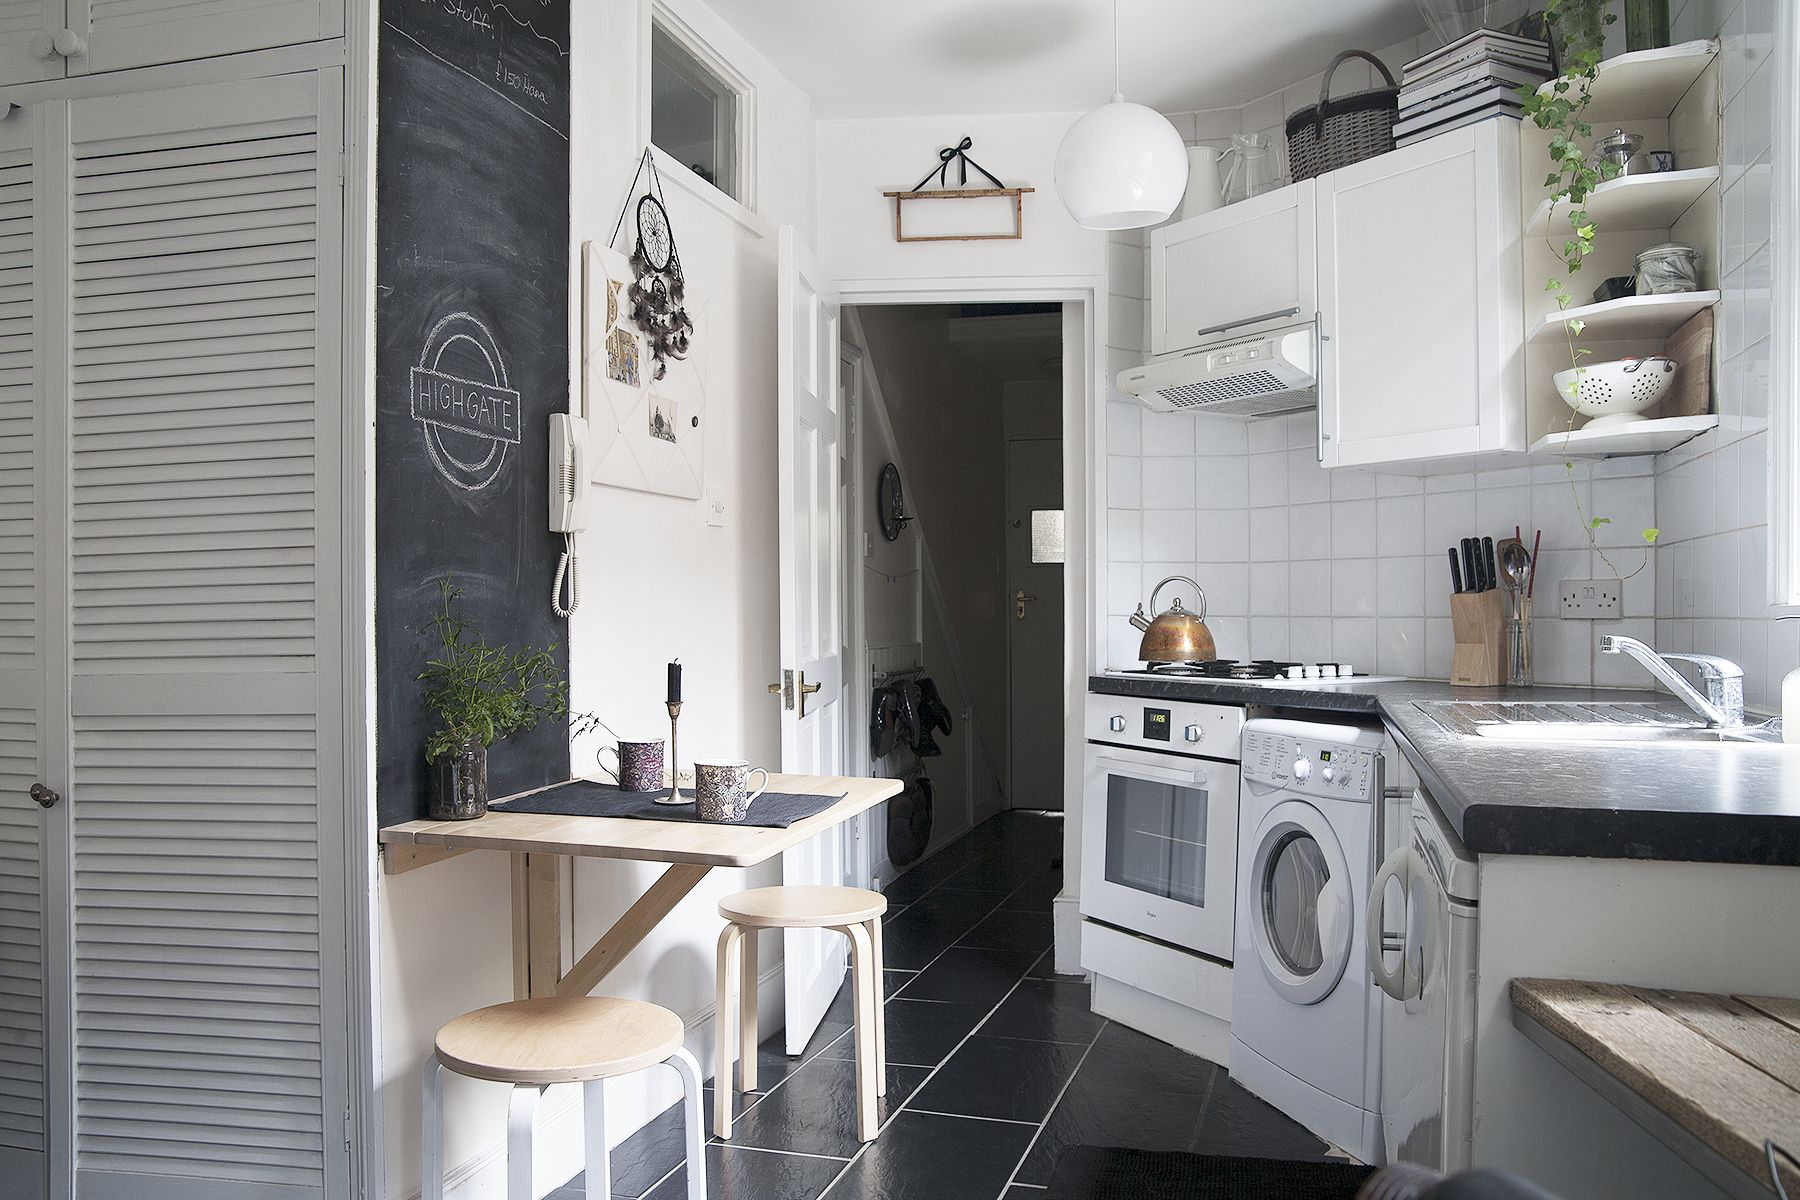 Kitchen space in a small London flat Featuring a space saving